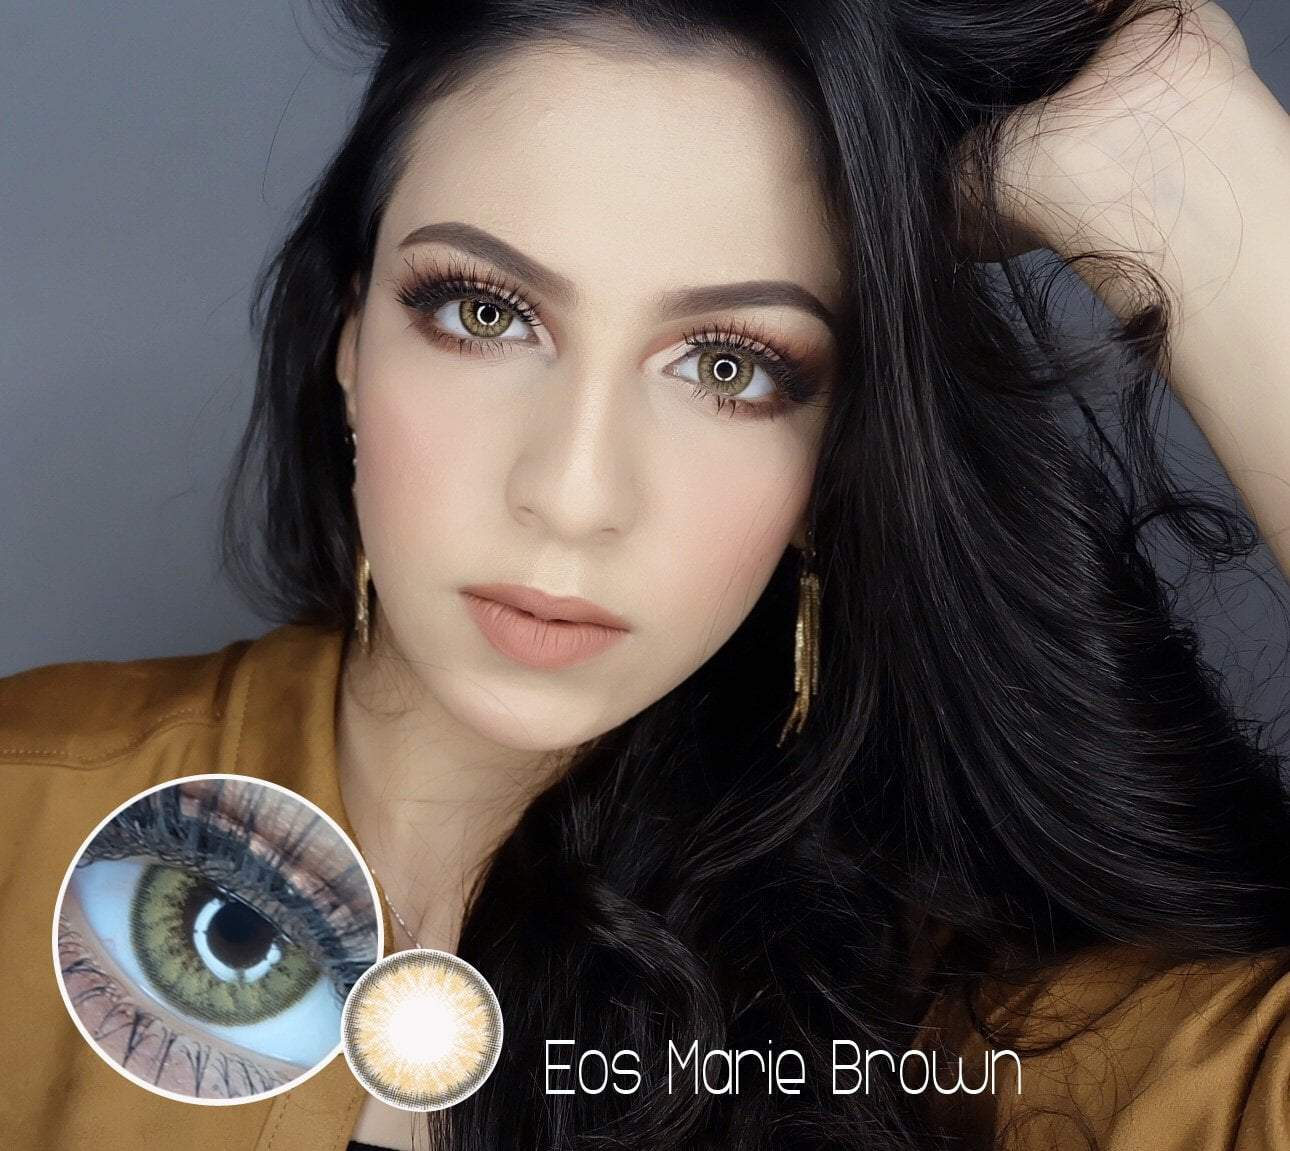 COLORED CONTACTS EOS MARIE BROWN - Lens Beauty Queen